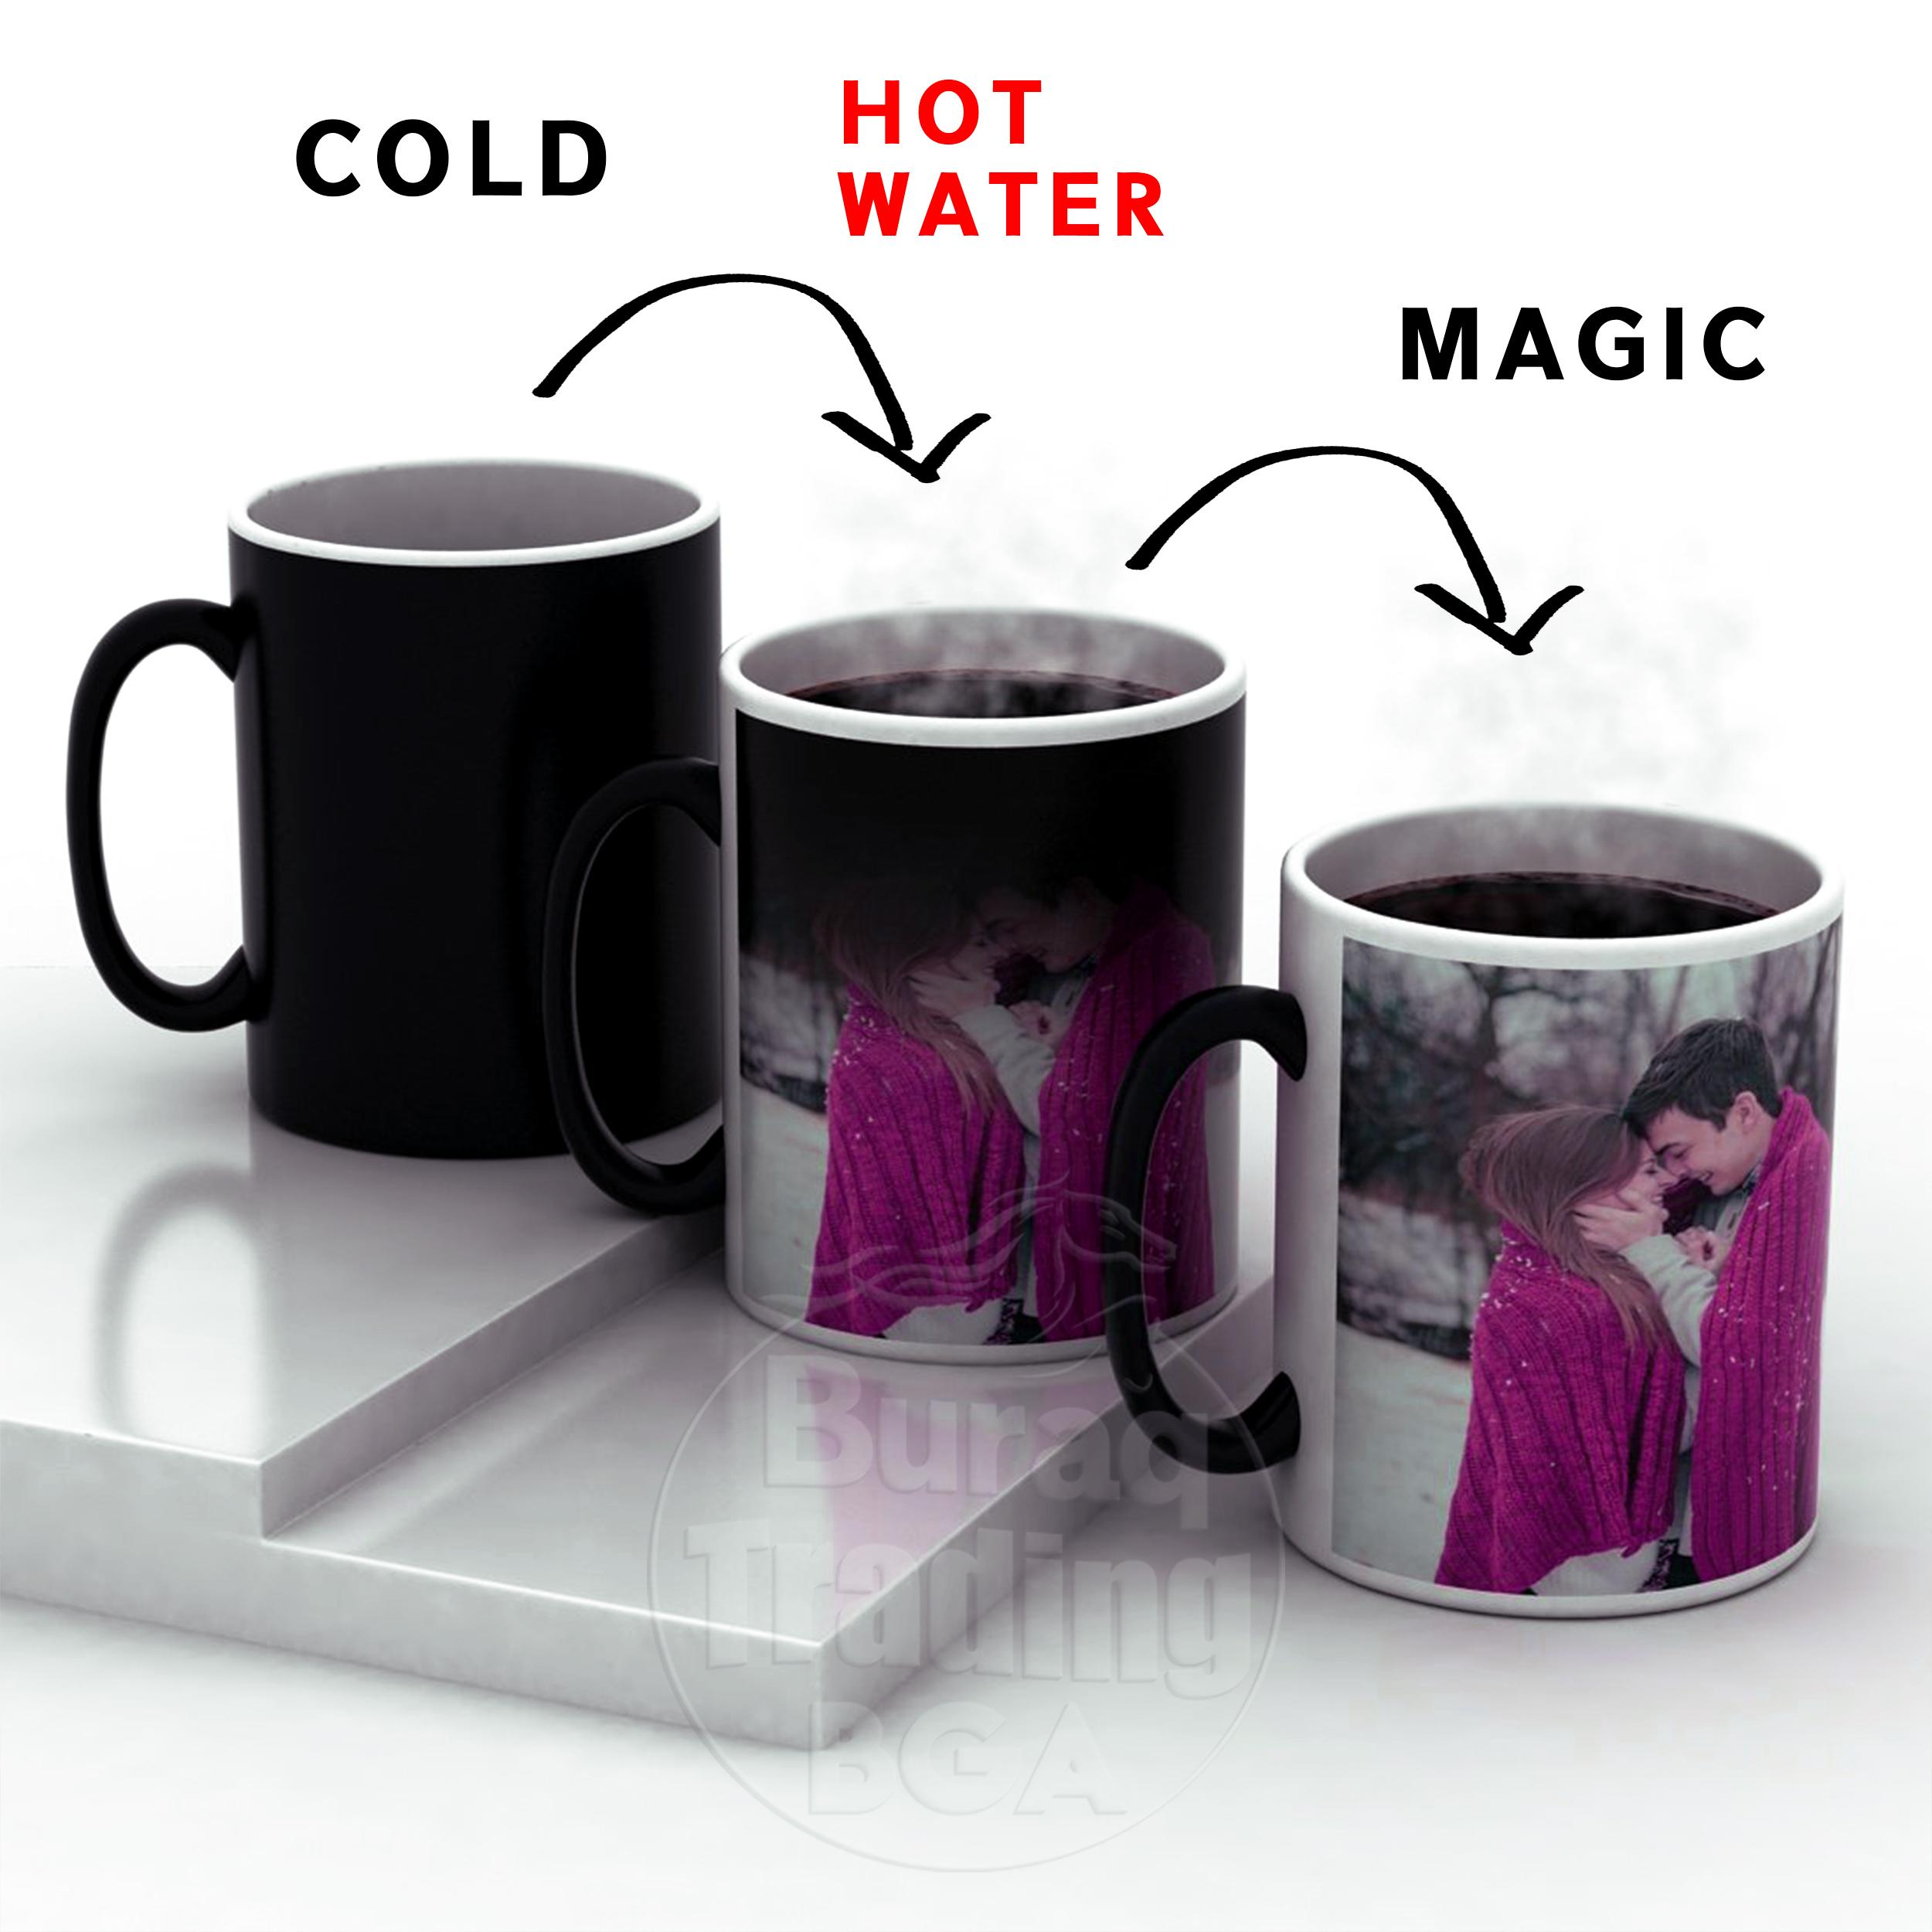 Color Changing Magic Mug Personalized Photo 325 Ml Buy Online At Best Prices In Pakistan Daraz Pk